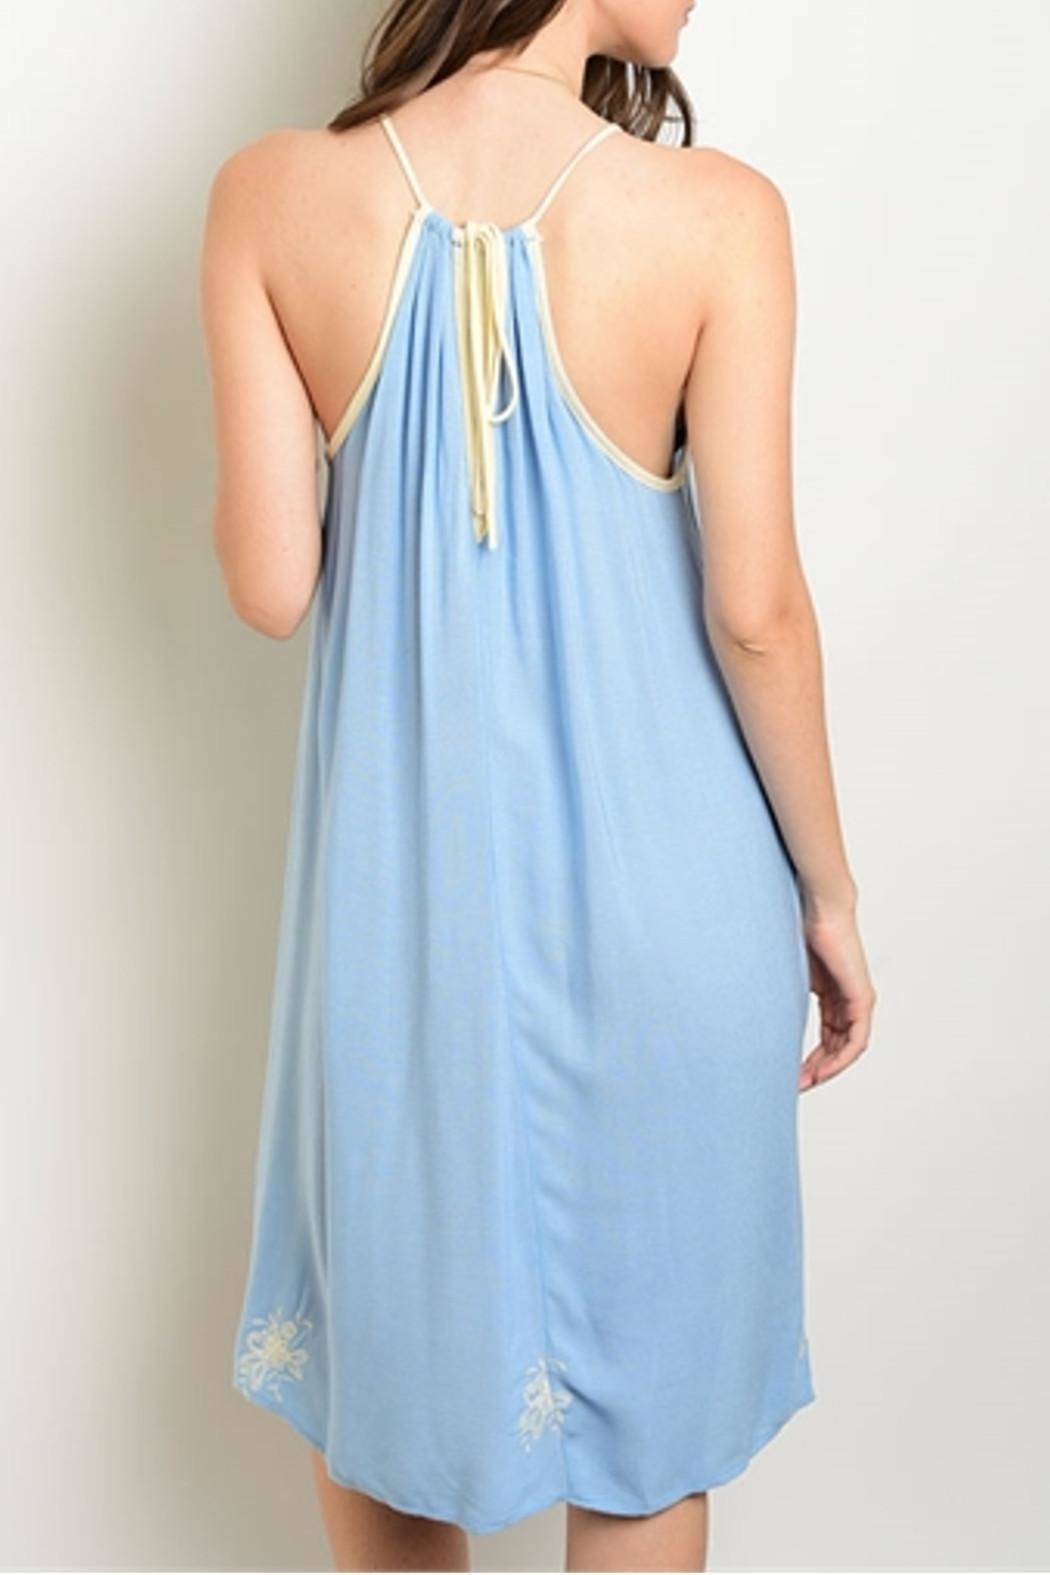 Dulce Carola Sky Blue Dress - Front Full Image